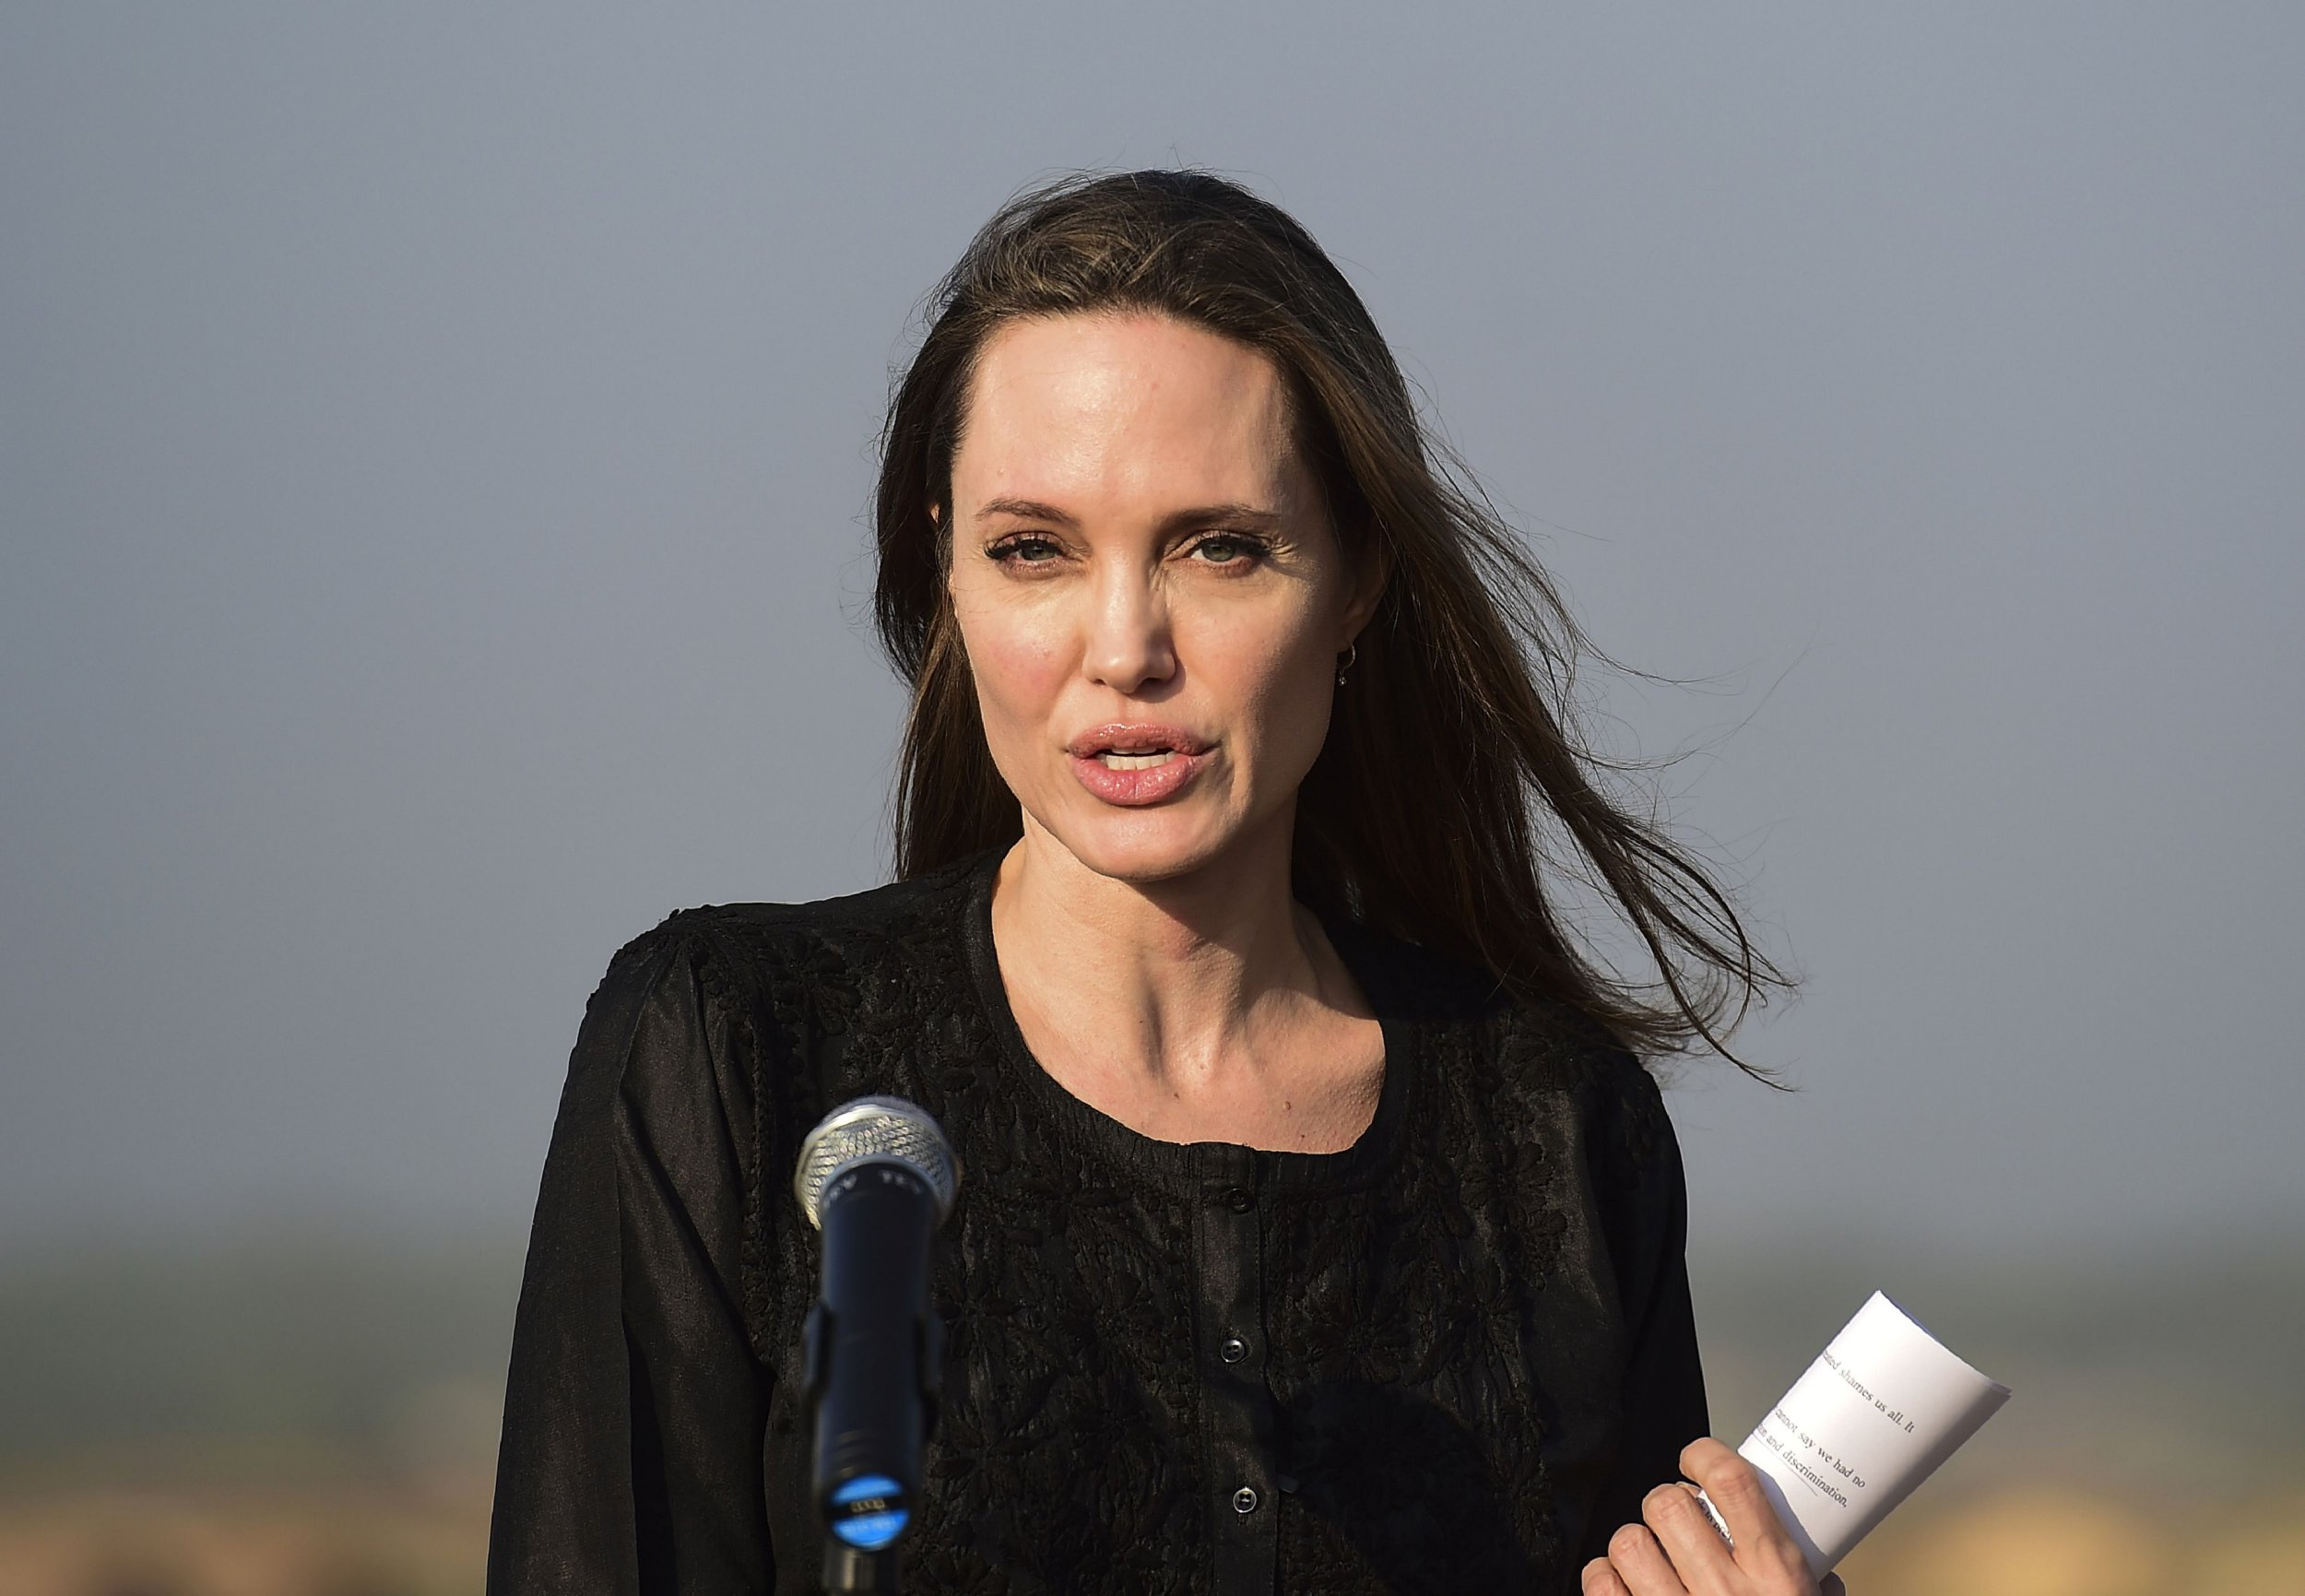 Angelina Jolie 'deeply upset' to visit Rohingya refugee camp ahead of UN's $1 billion aid appeal